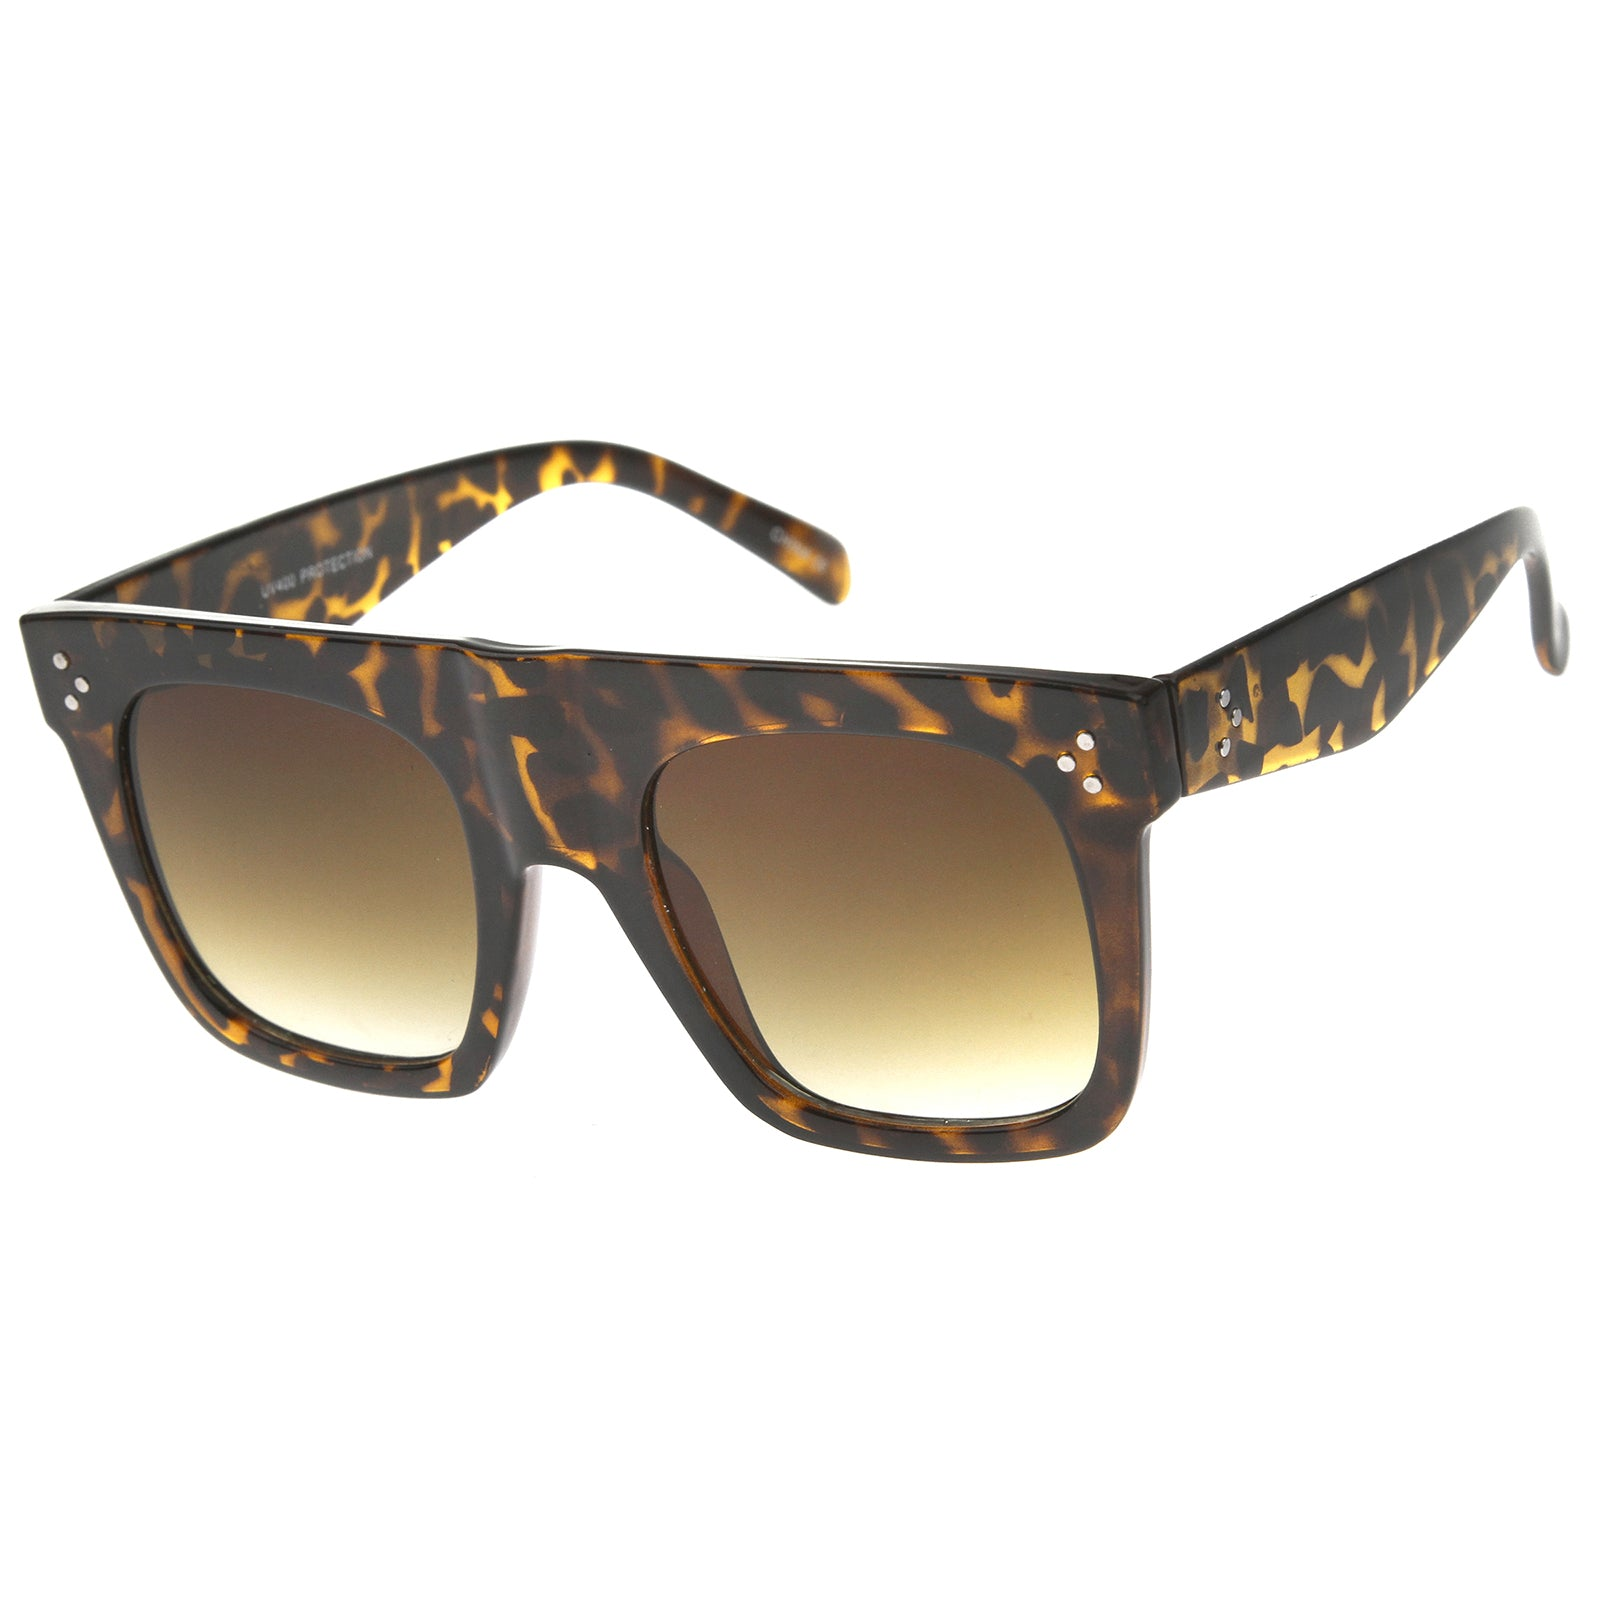 Modern Fashion Bold Flat Top Square Horn Rimmed Sunglasses 50mm - sunglass.la - 2